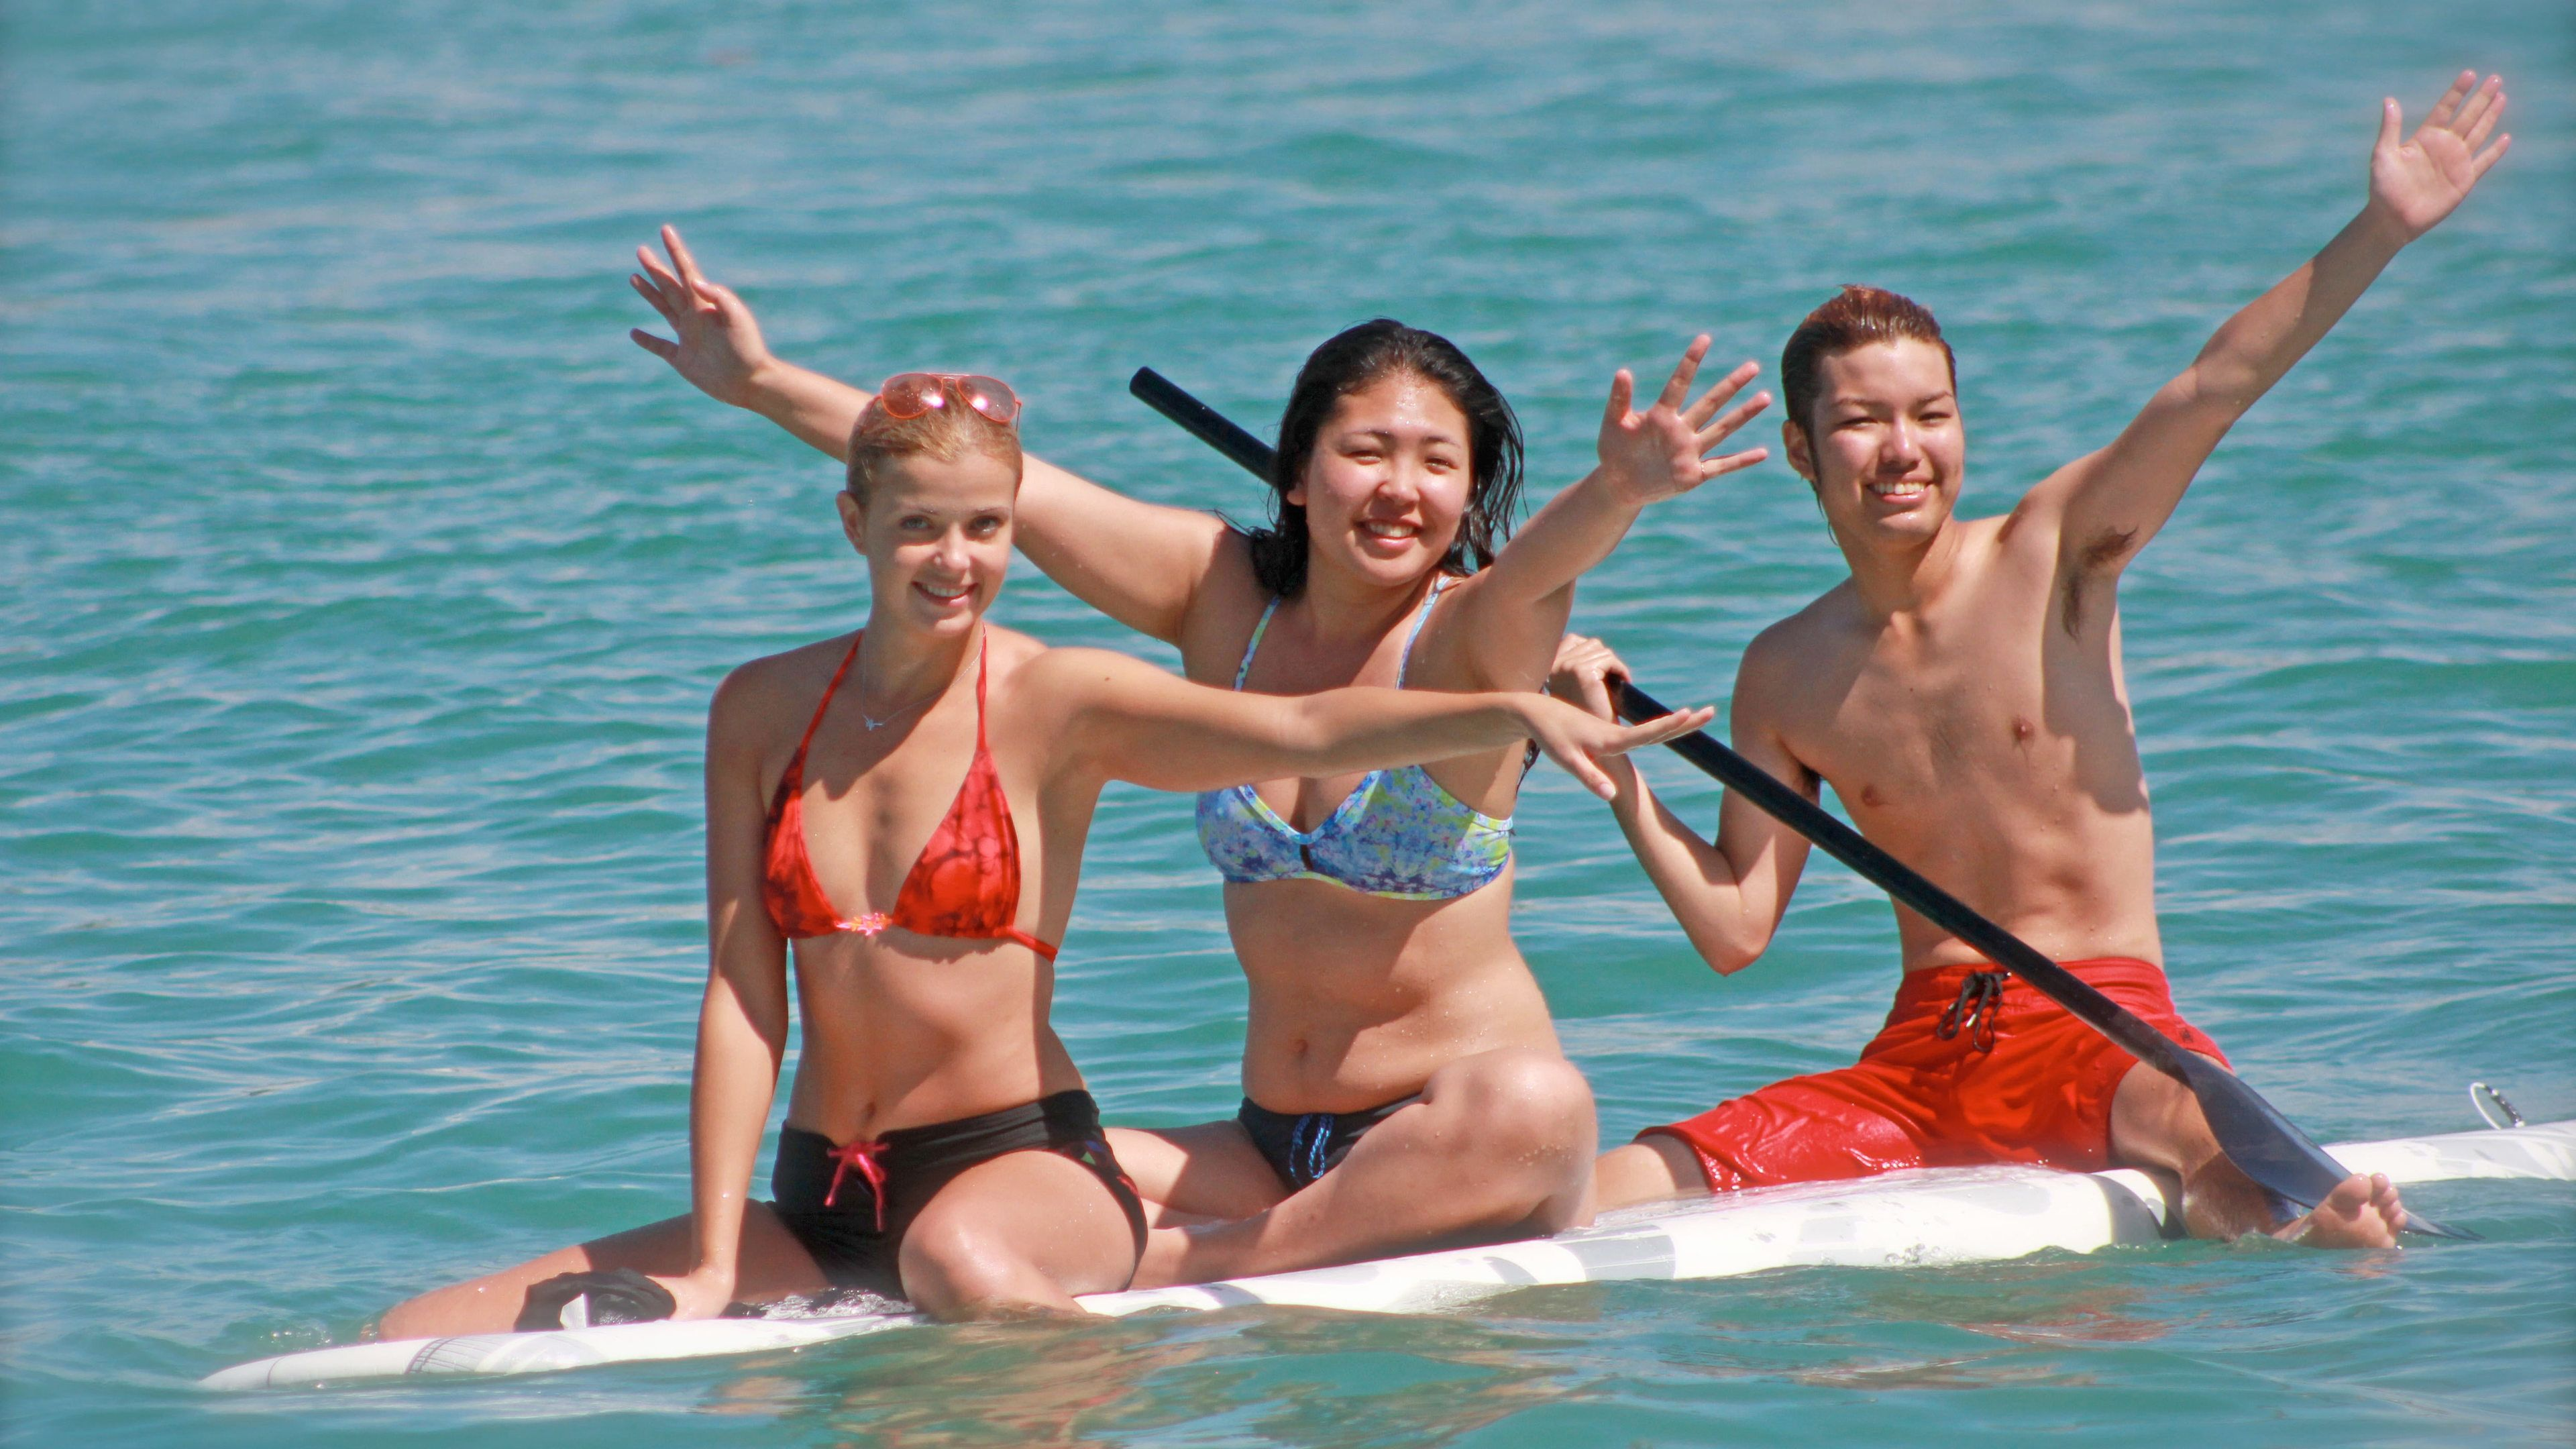 Three guests having a good paddle boarding time on Miami Beach